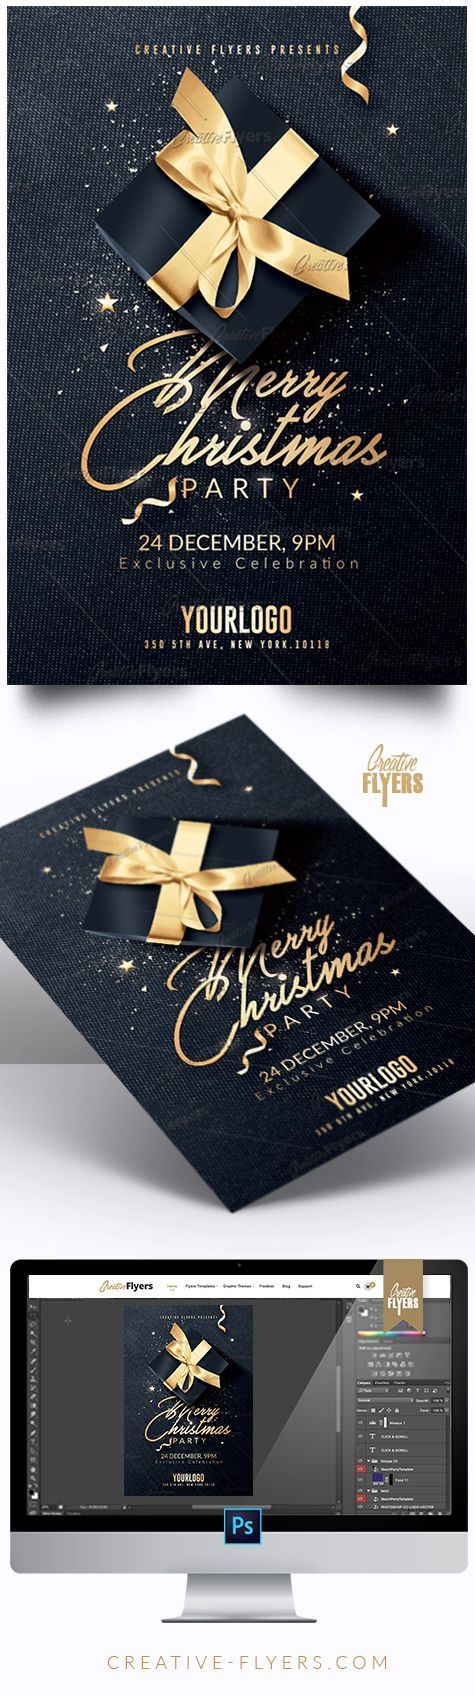 birthday party invitation templates free printable%0A Creative Merry Christmas Flyer  Enjoy downloading the Premium Photoshop  PSD Flyer   poster Template designed